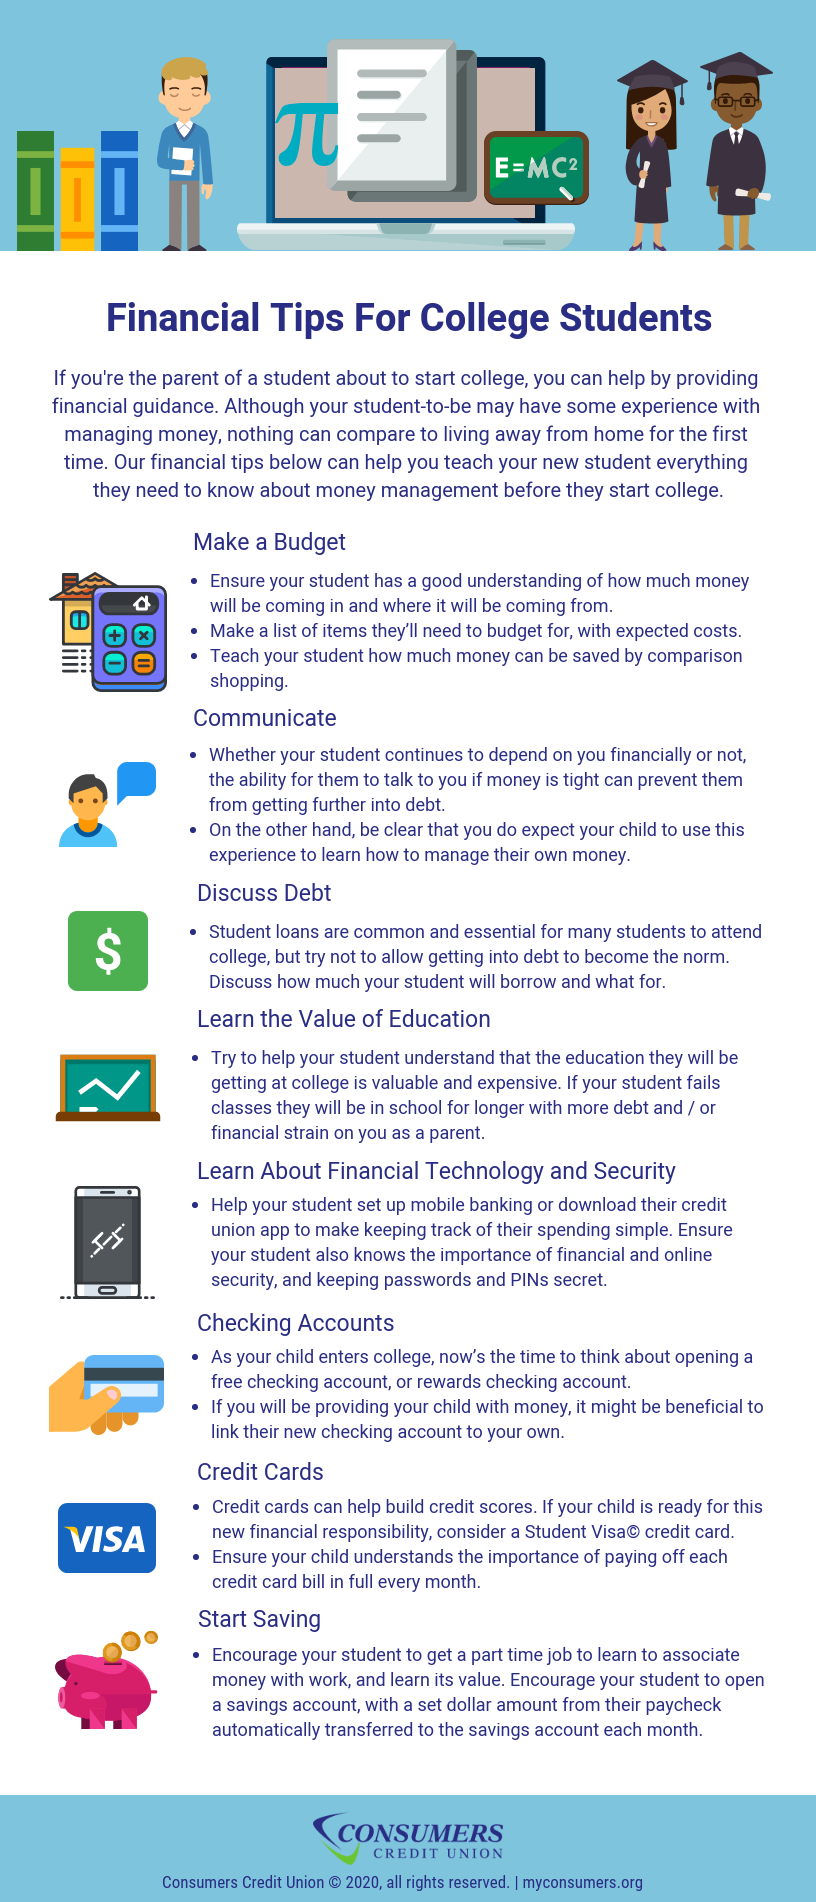 financial tips for college students - consumers credit union